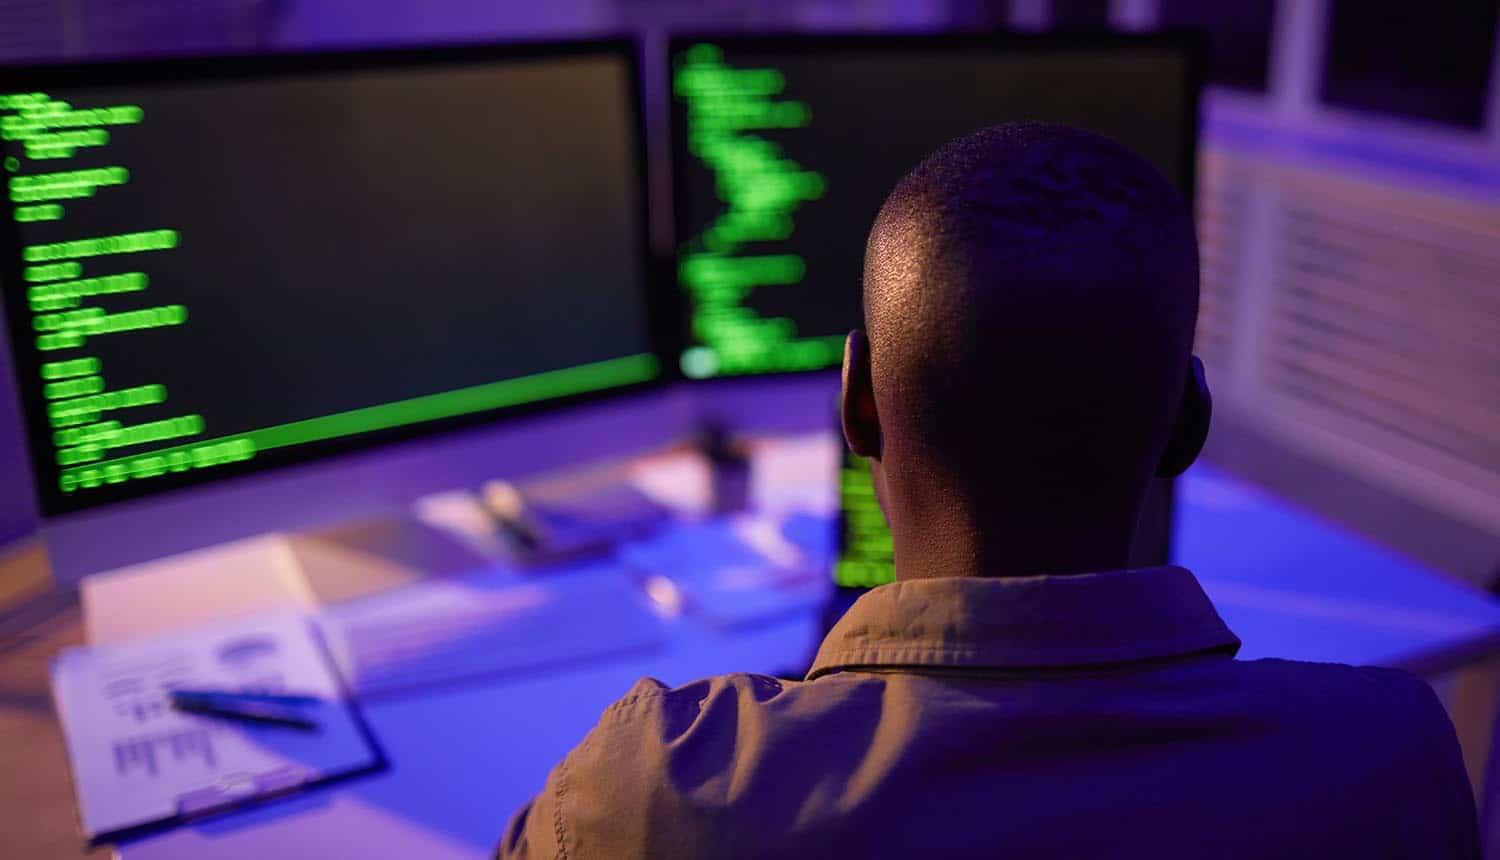 Rear view shot of developer sitting in front of monitors showing Codecov supply chain attack